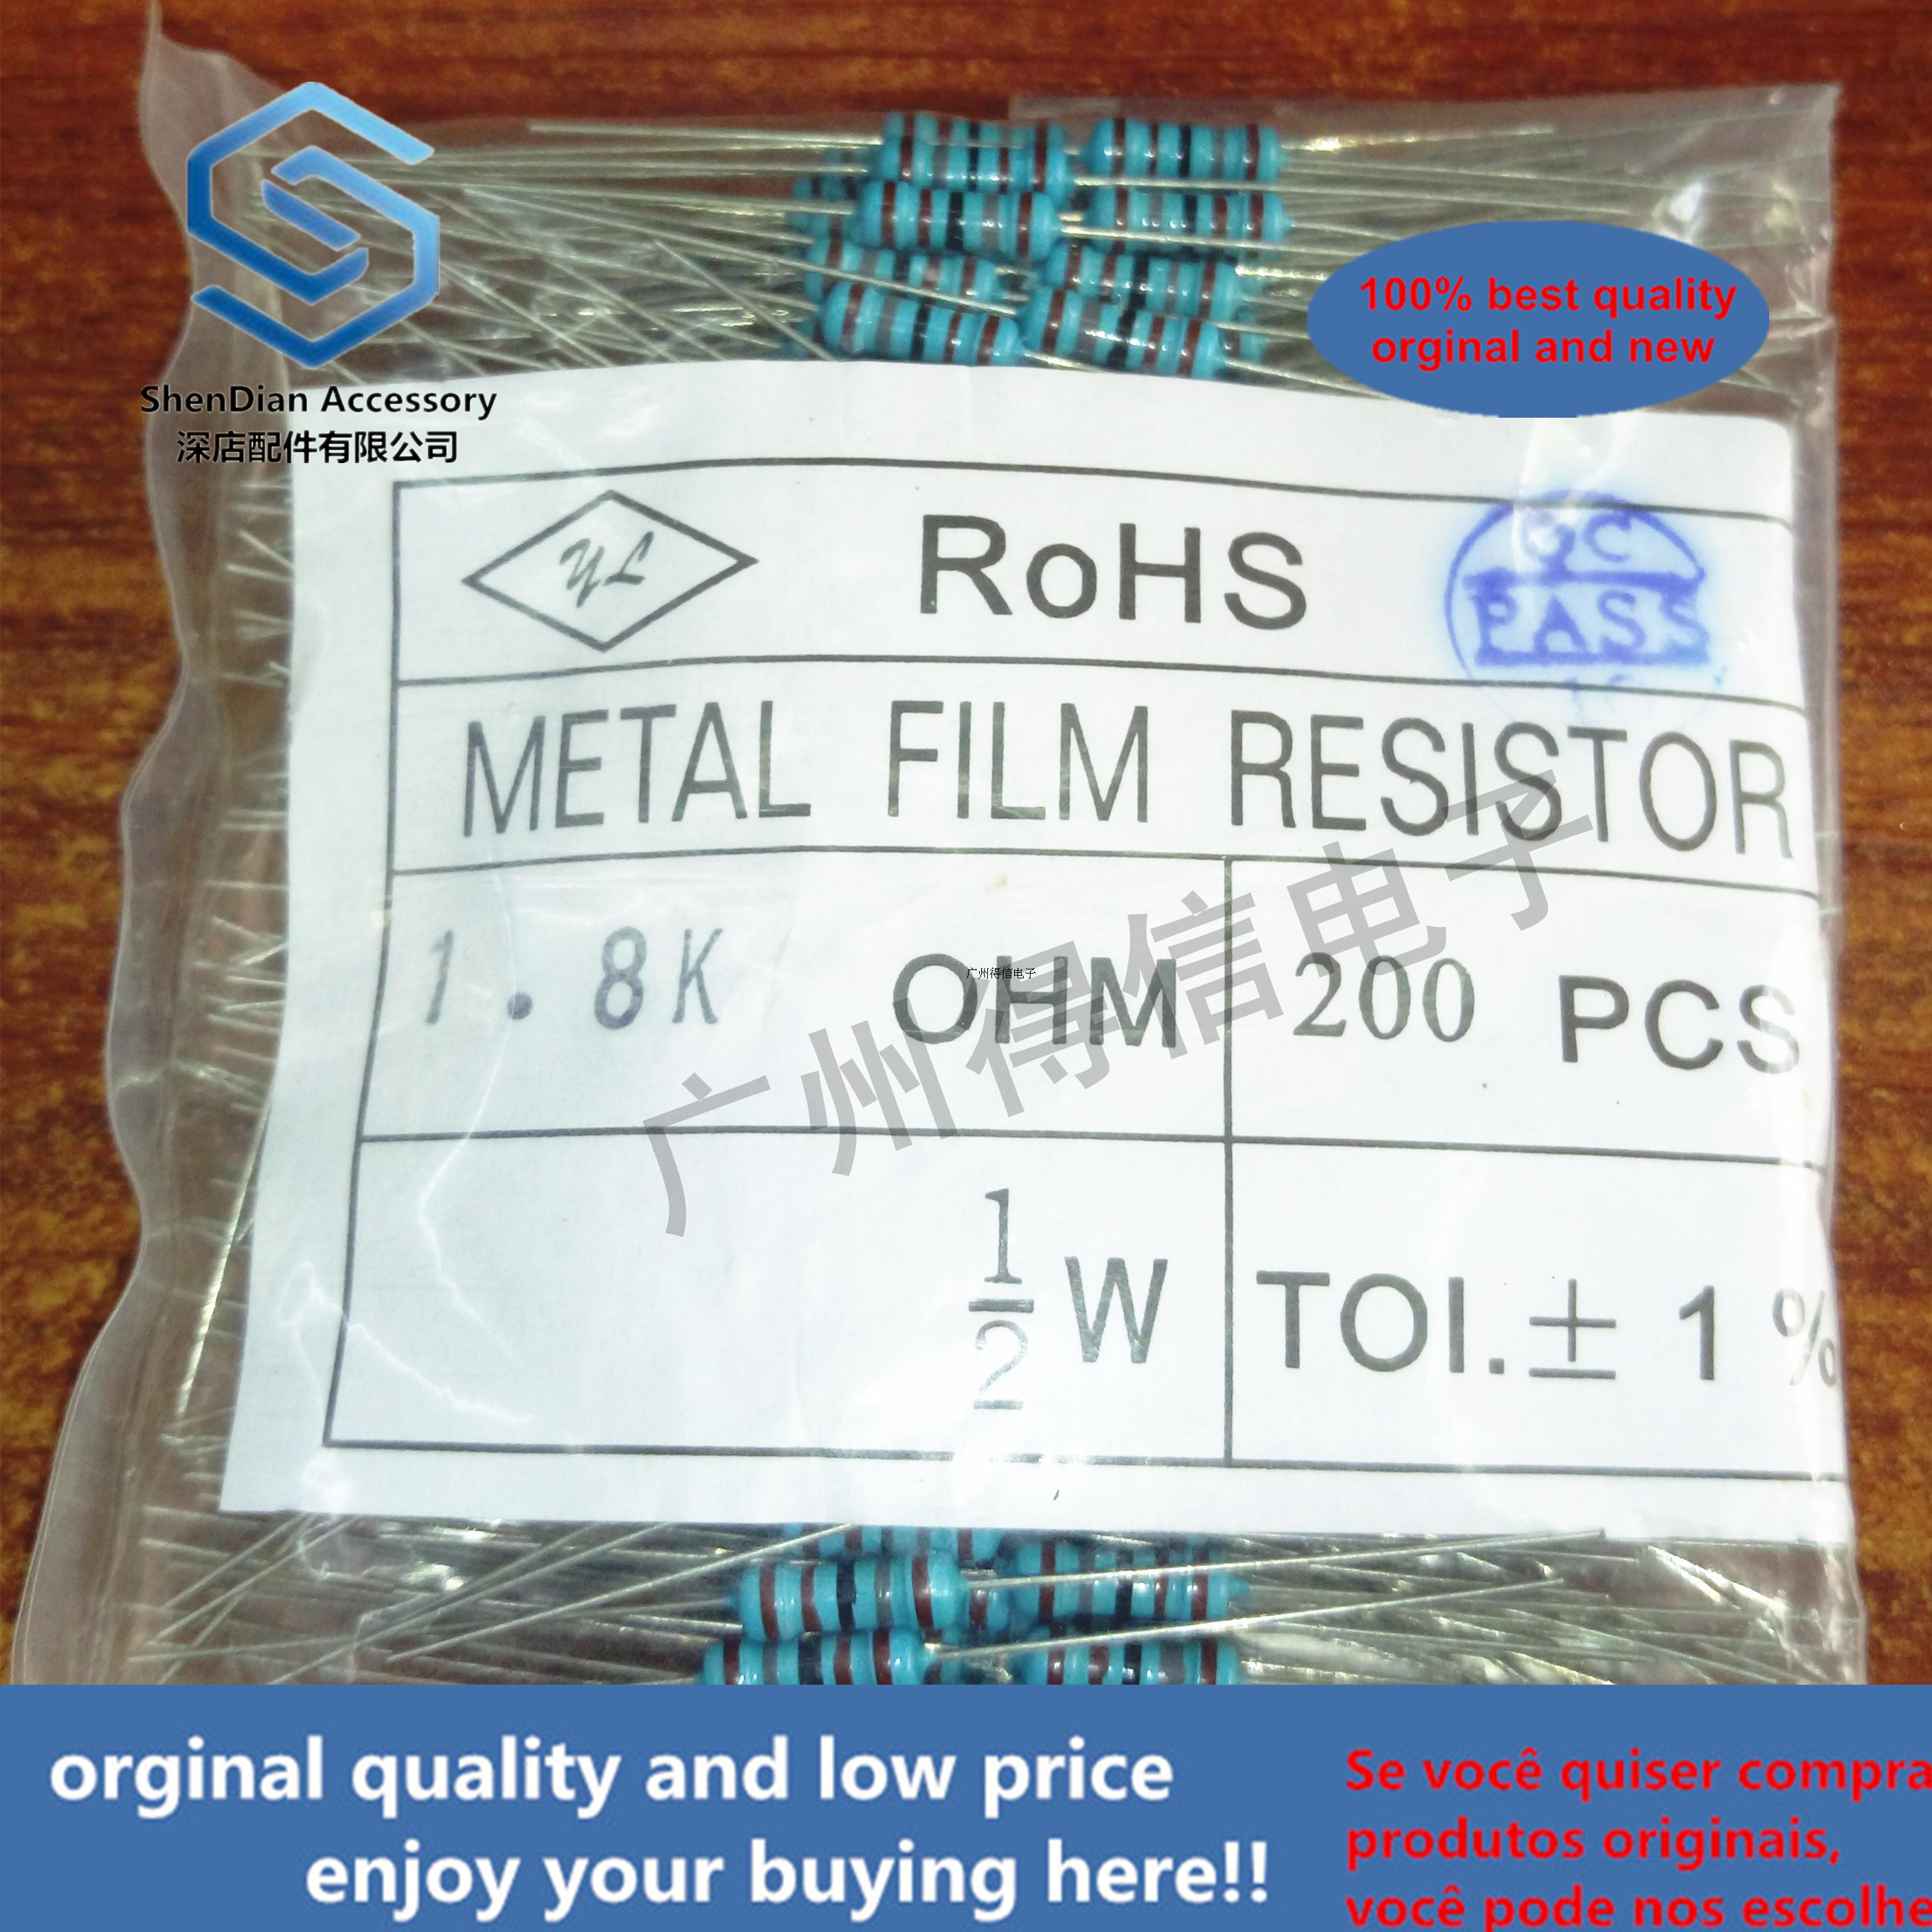 200pcs 1 / 2W 430R 430 Euro 1% Brand New Metal Film Iron Feet Resistor Bag 200 Pcs Per Pack